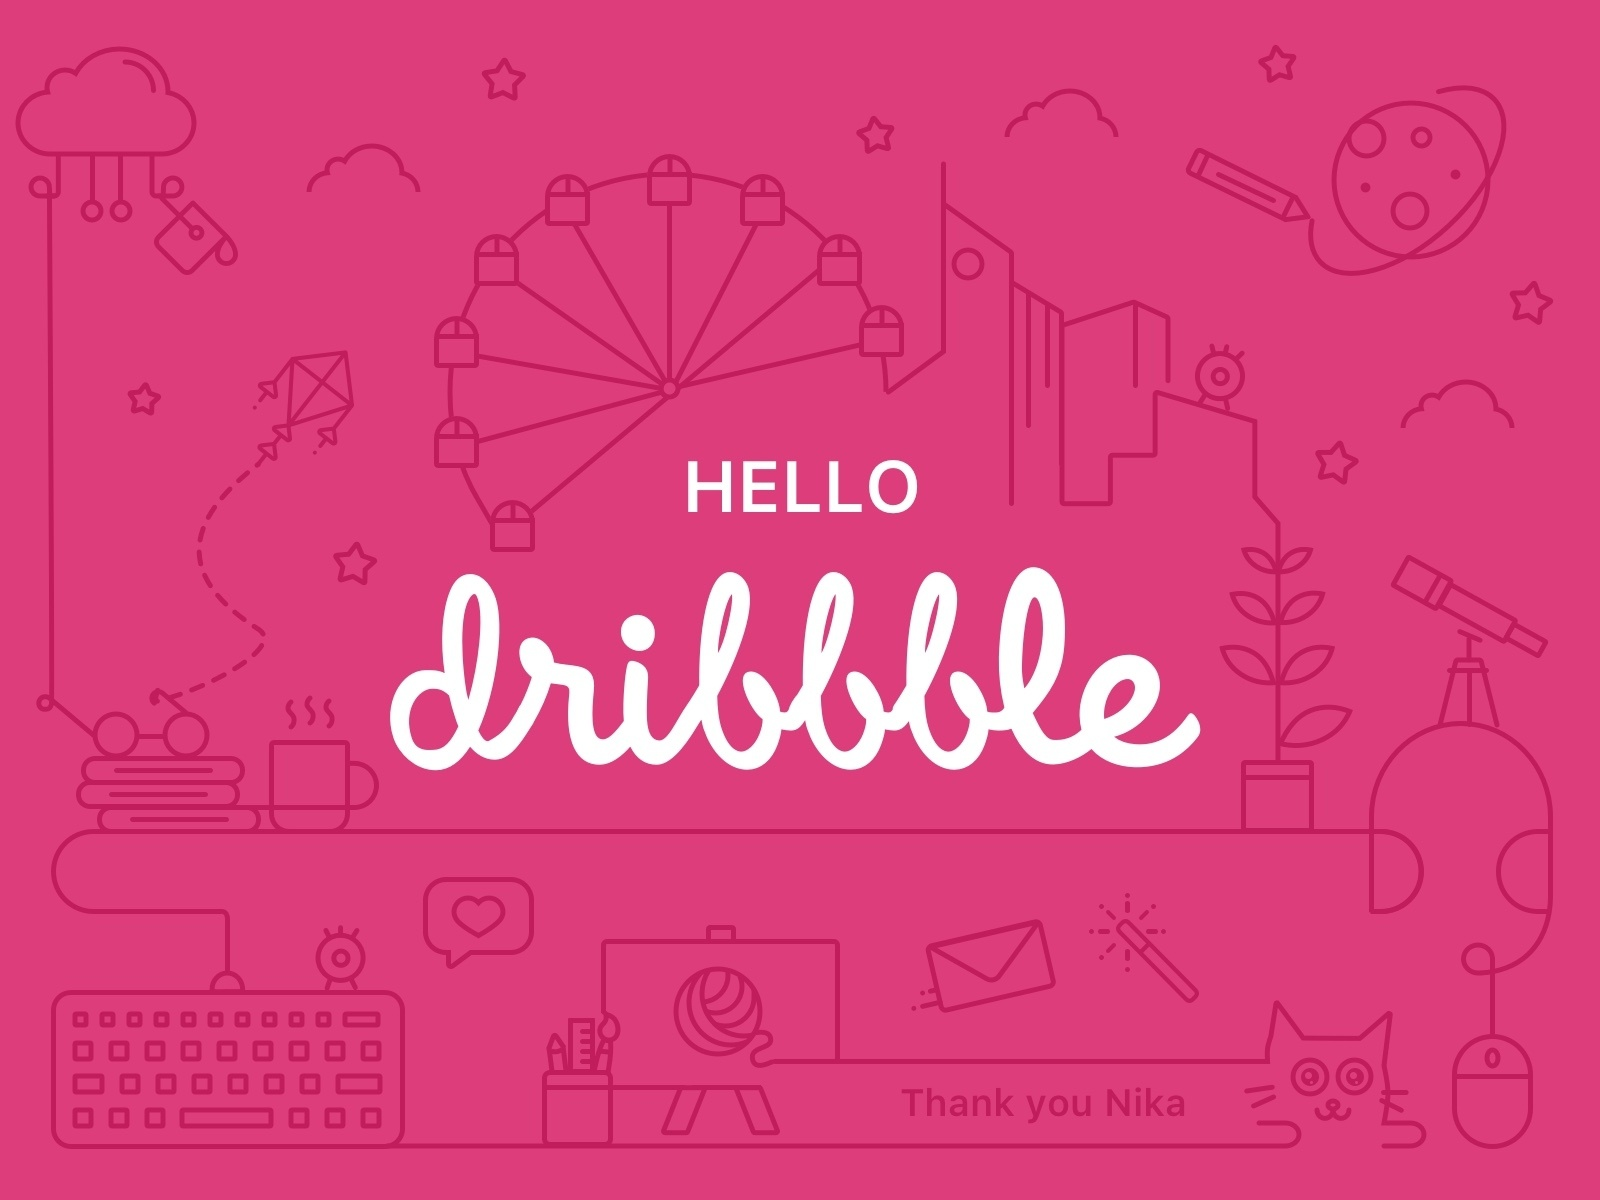 Flirt App Designs, Themes, Templates And Downloadable Graphic Elements On Dribbble